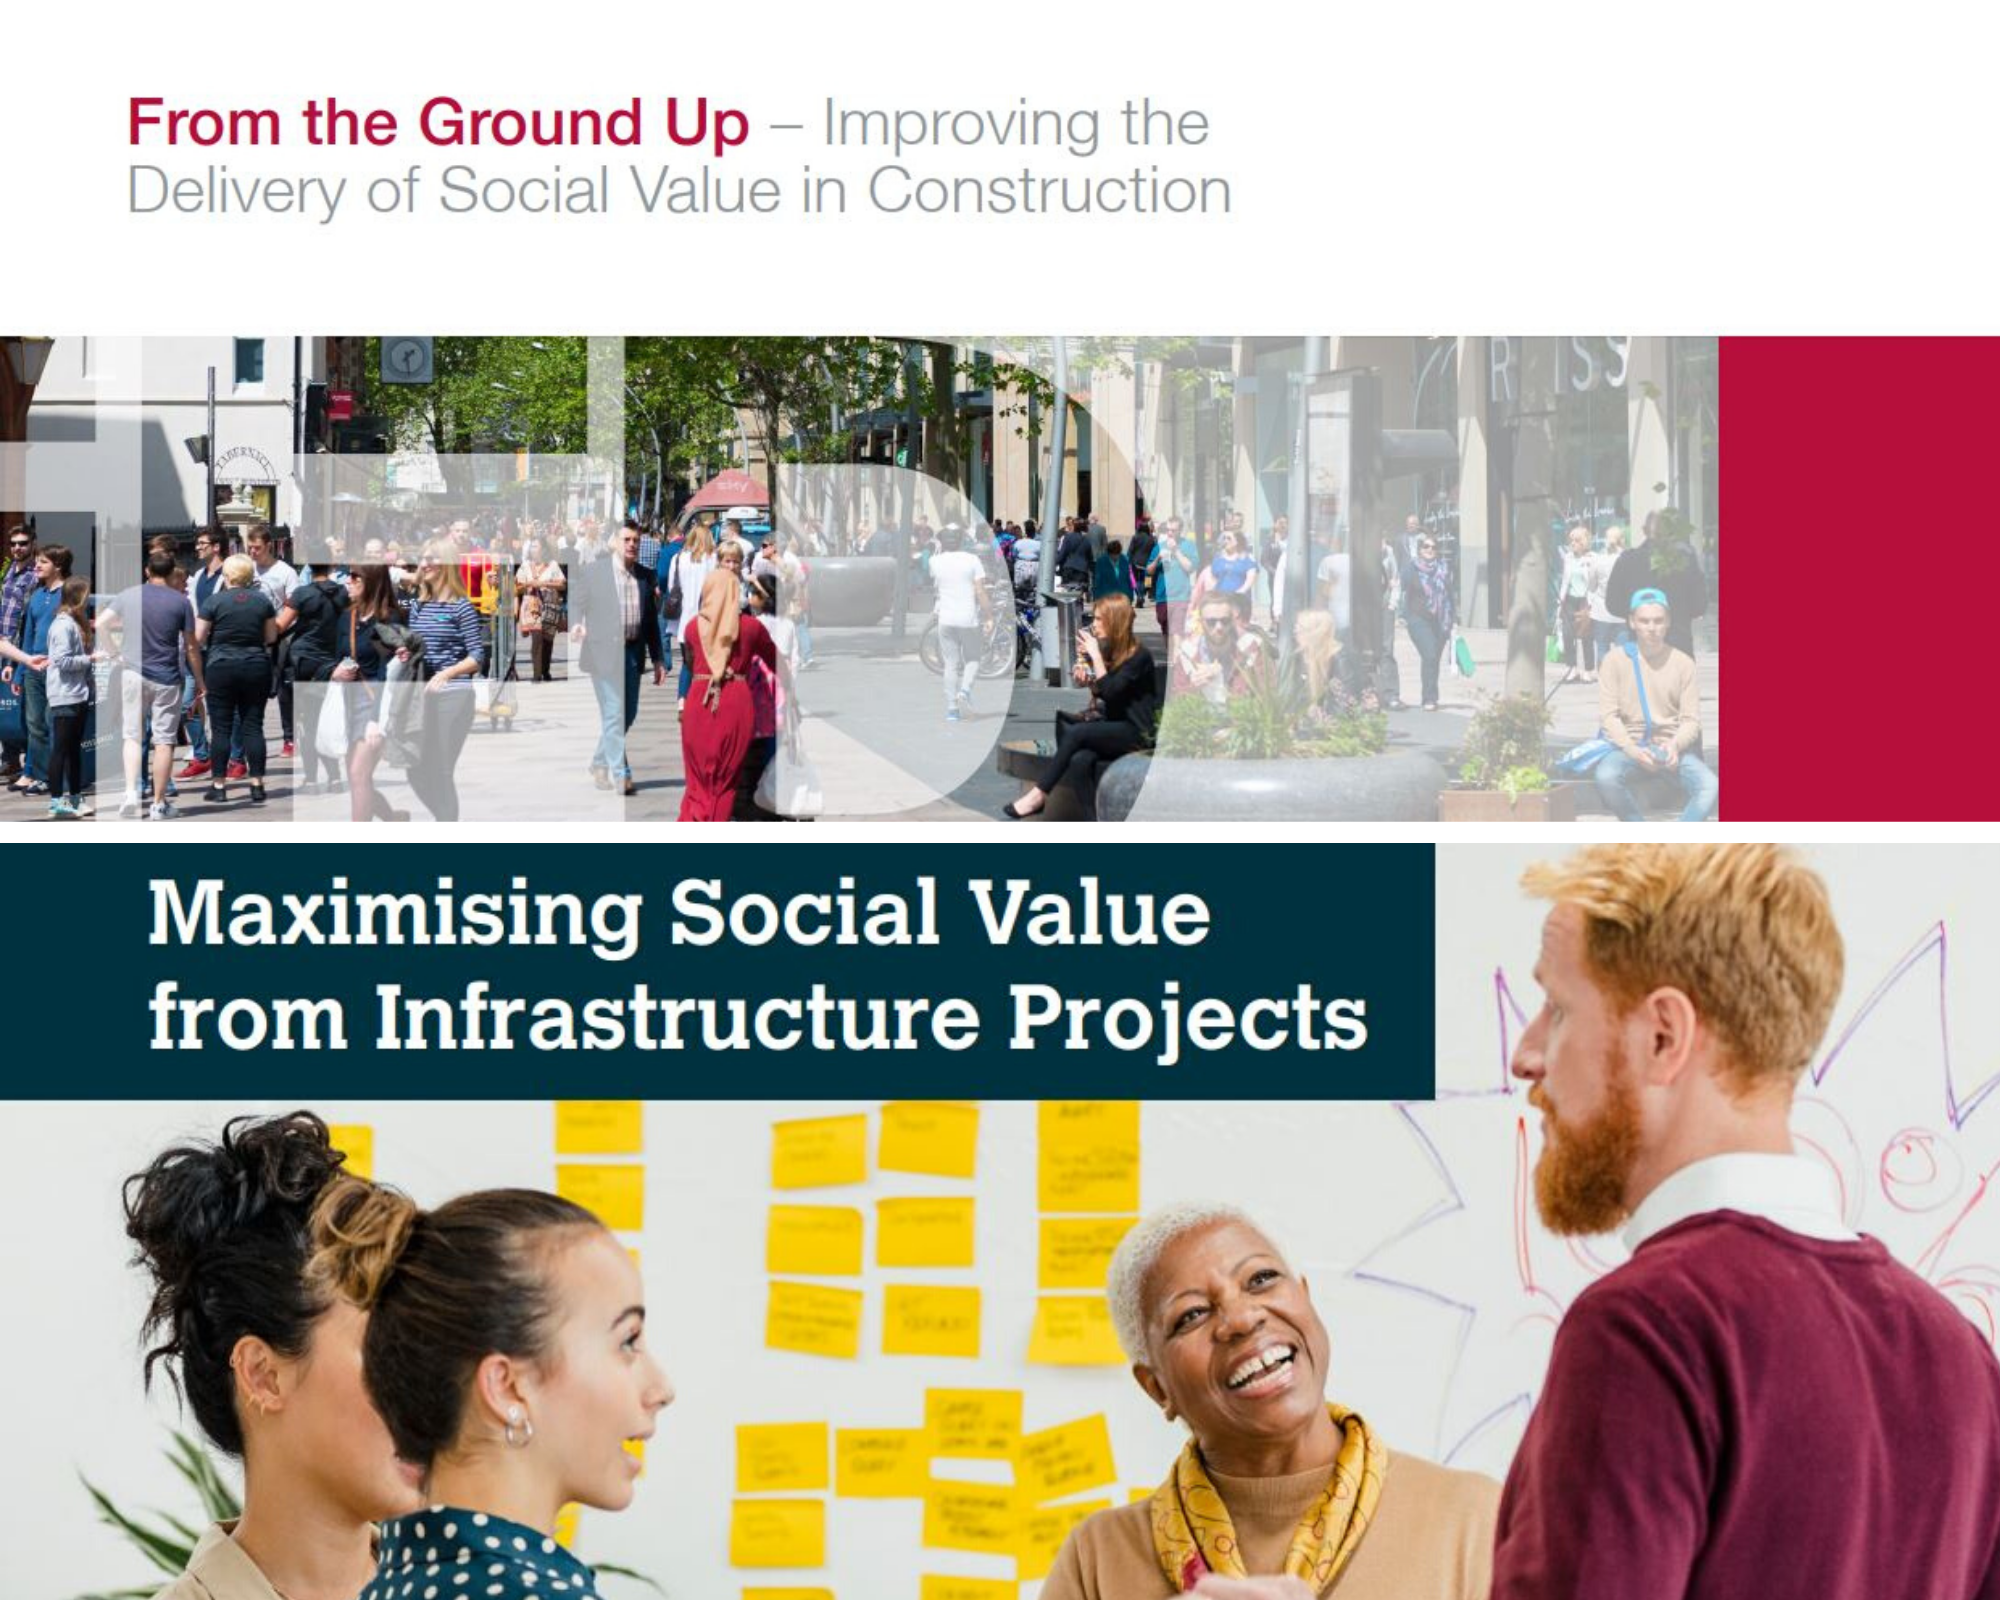 Two reports launched on Social Value provision image